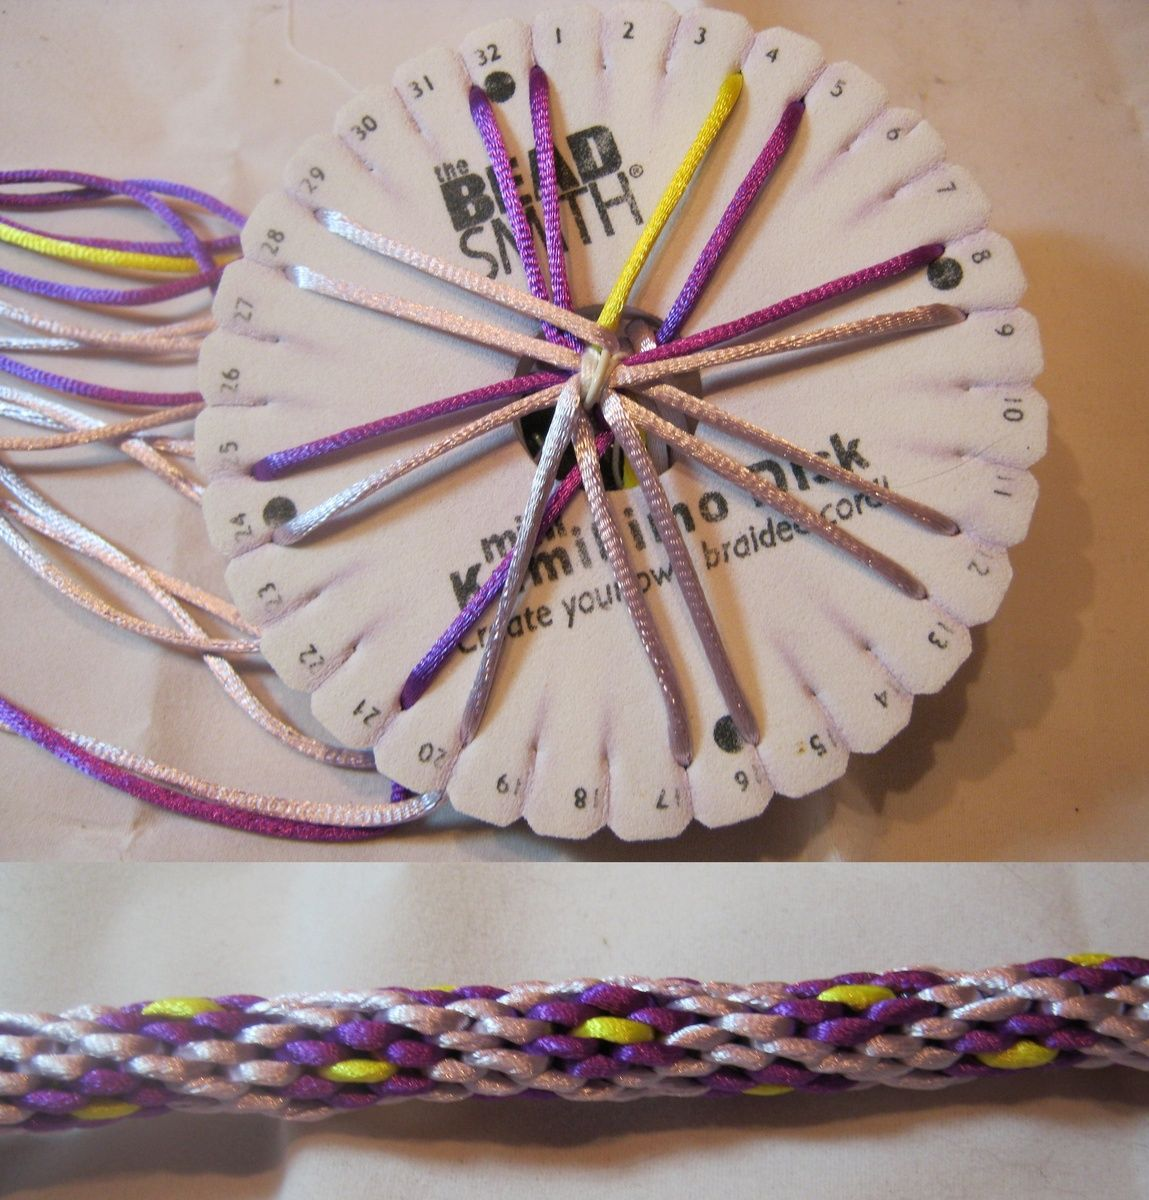 Kumihimo letus start with an wire bracelet flower pattern